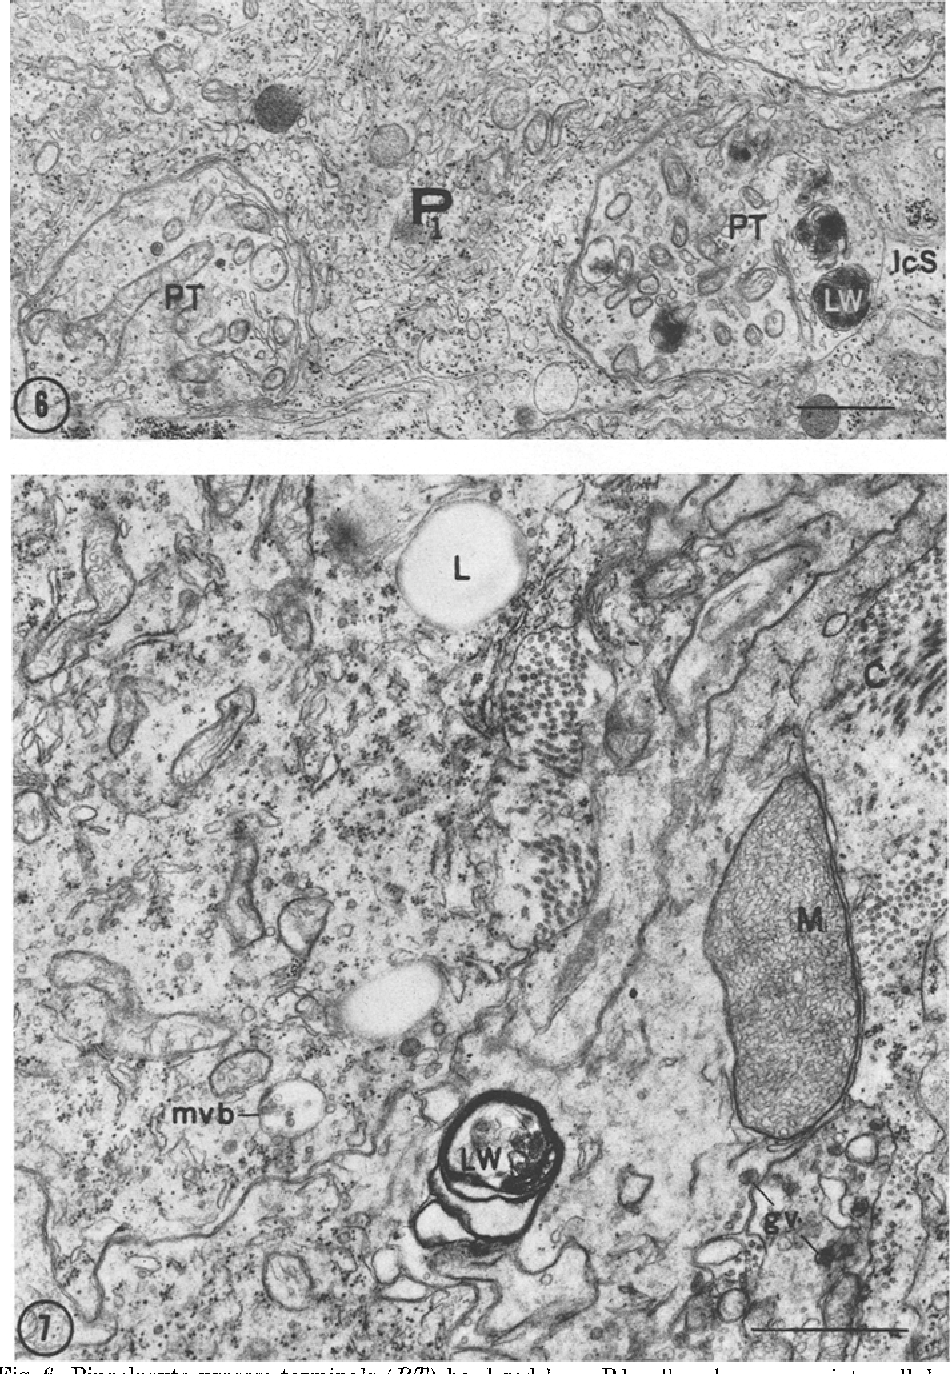 Fig. 6. Pinealocyte process-terminals (PT) bordered by a P 1 cell and a narrow intercellular space (ITS). The terminal at the right contains several small lamellar whorls (LW). • 12700